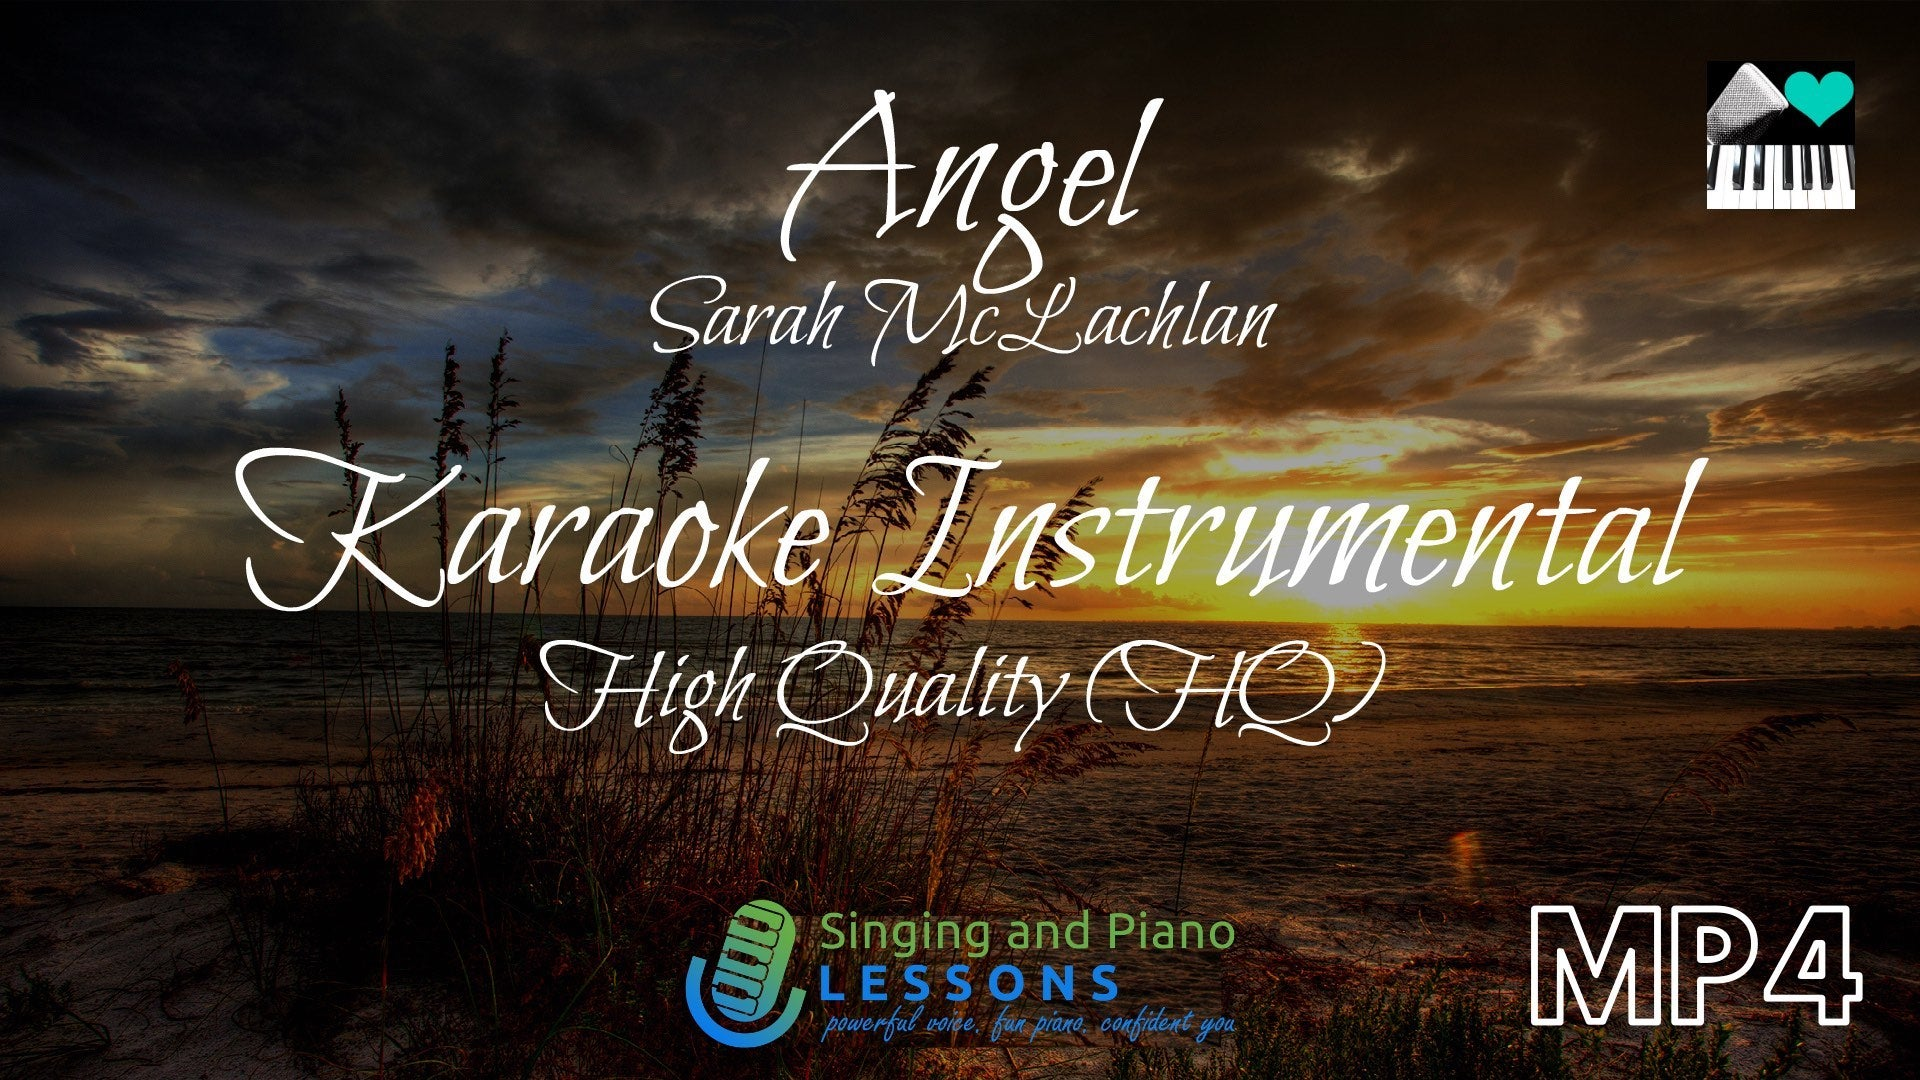 Angel Sarah McLachlan Karaoke Instrumental - Video MP4